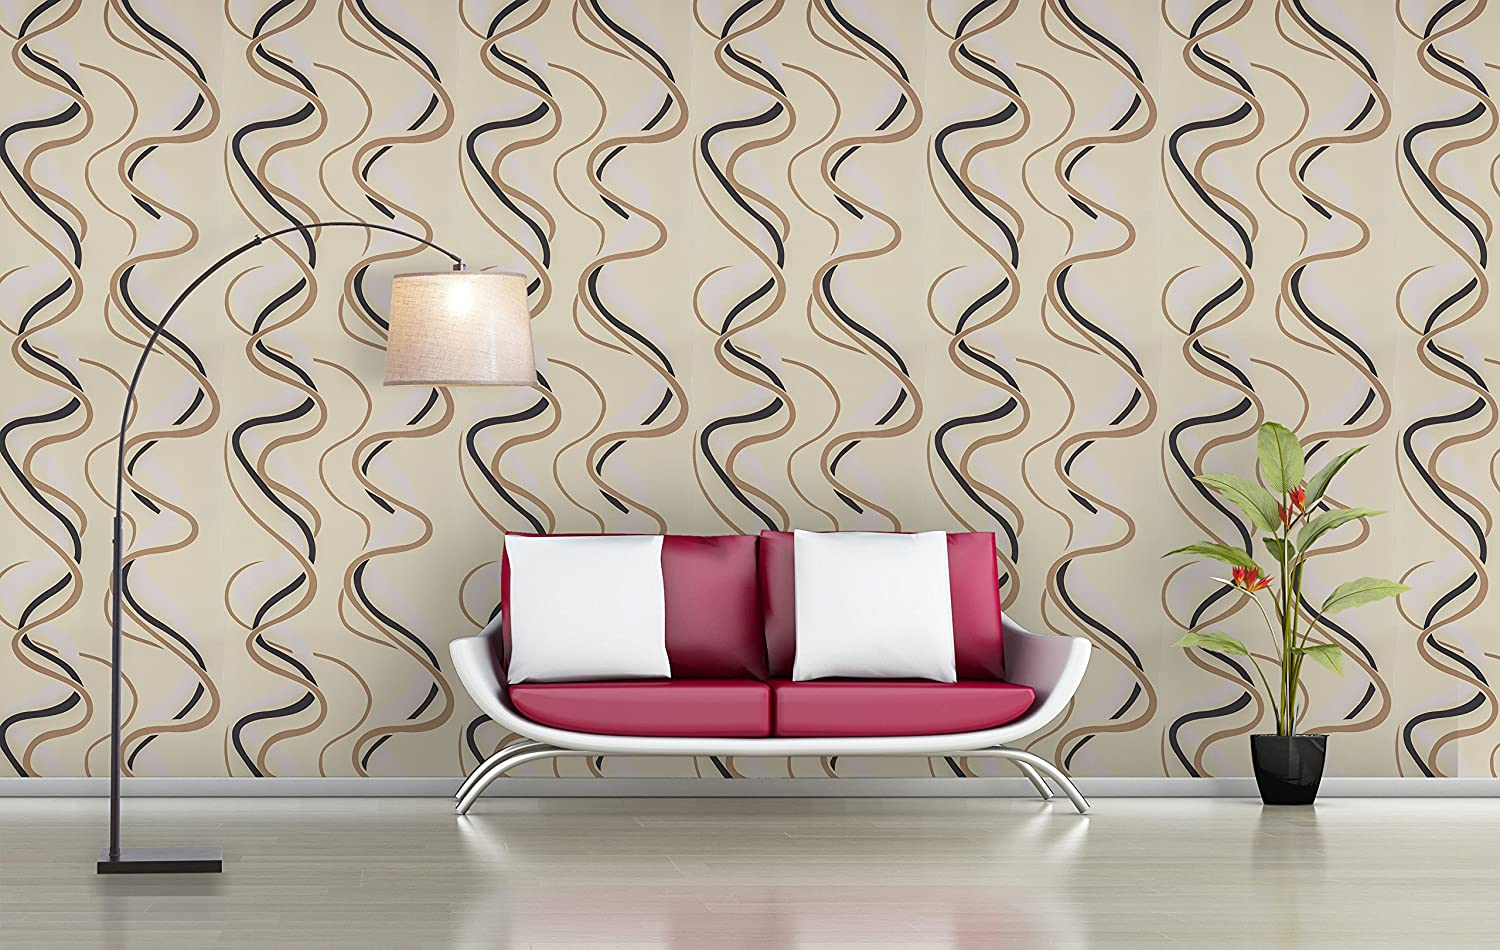 BDPP Imported Non-Woven Washable Wallpaper-W7804(Covers Approximately 50 Square. Feet.): Amazon.in: Home Improvement